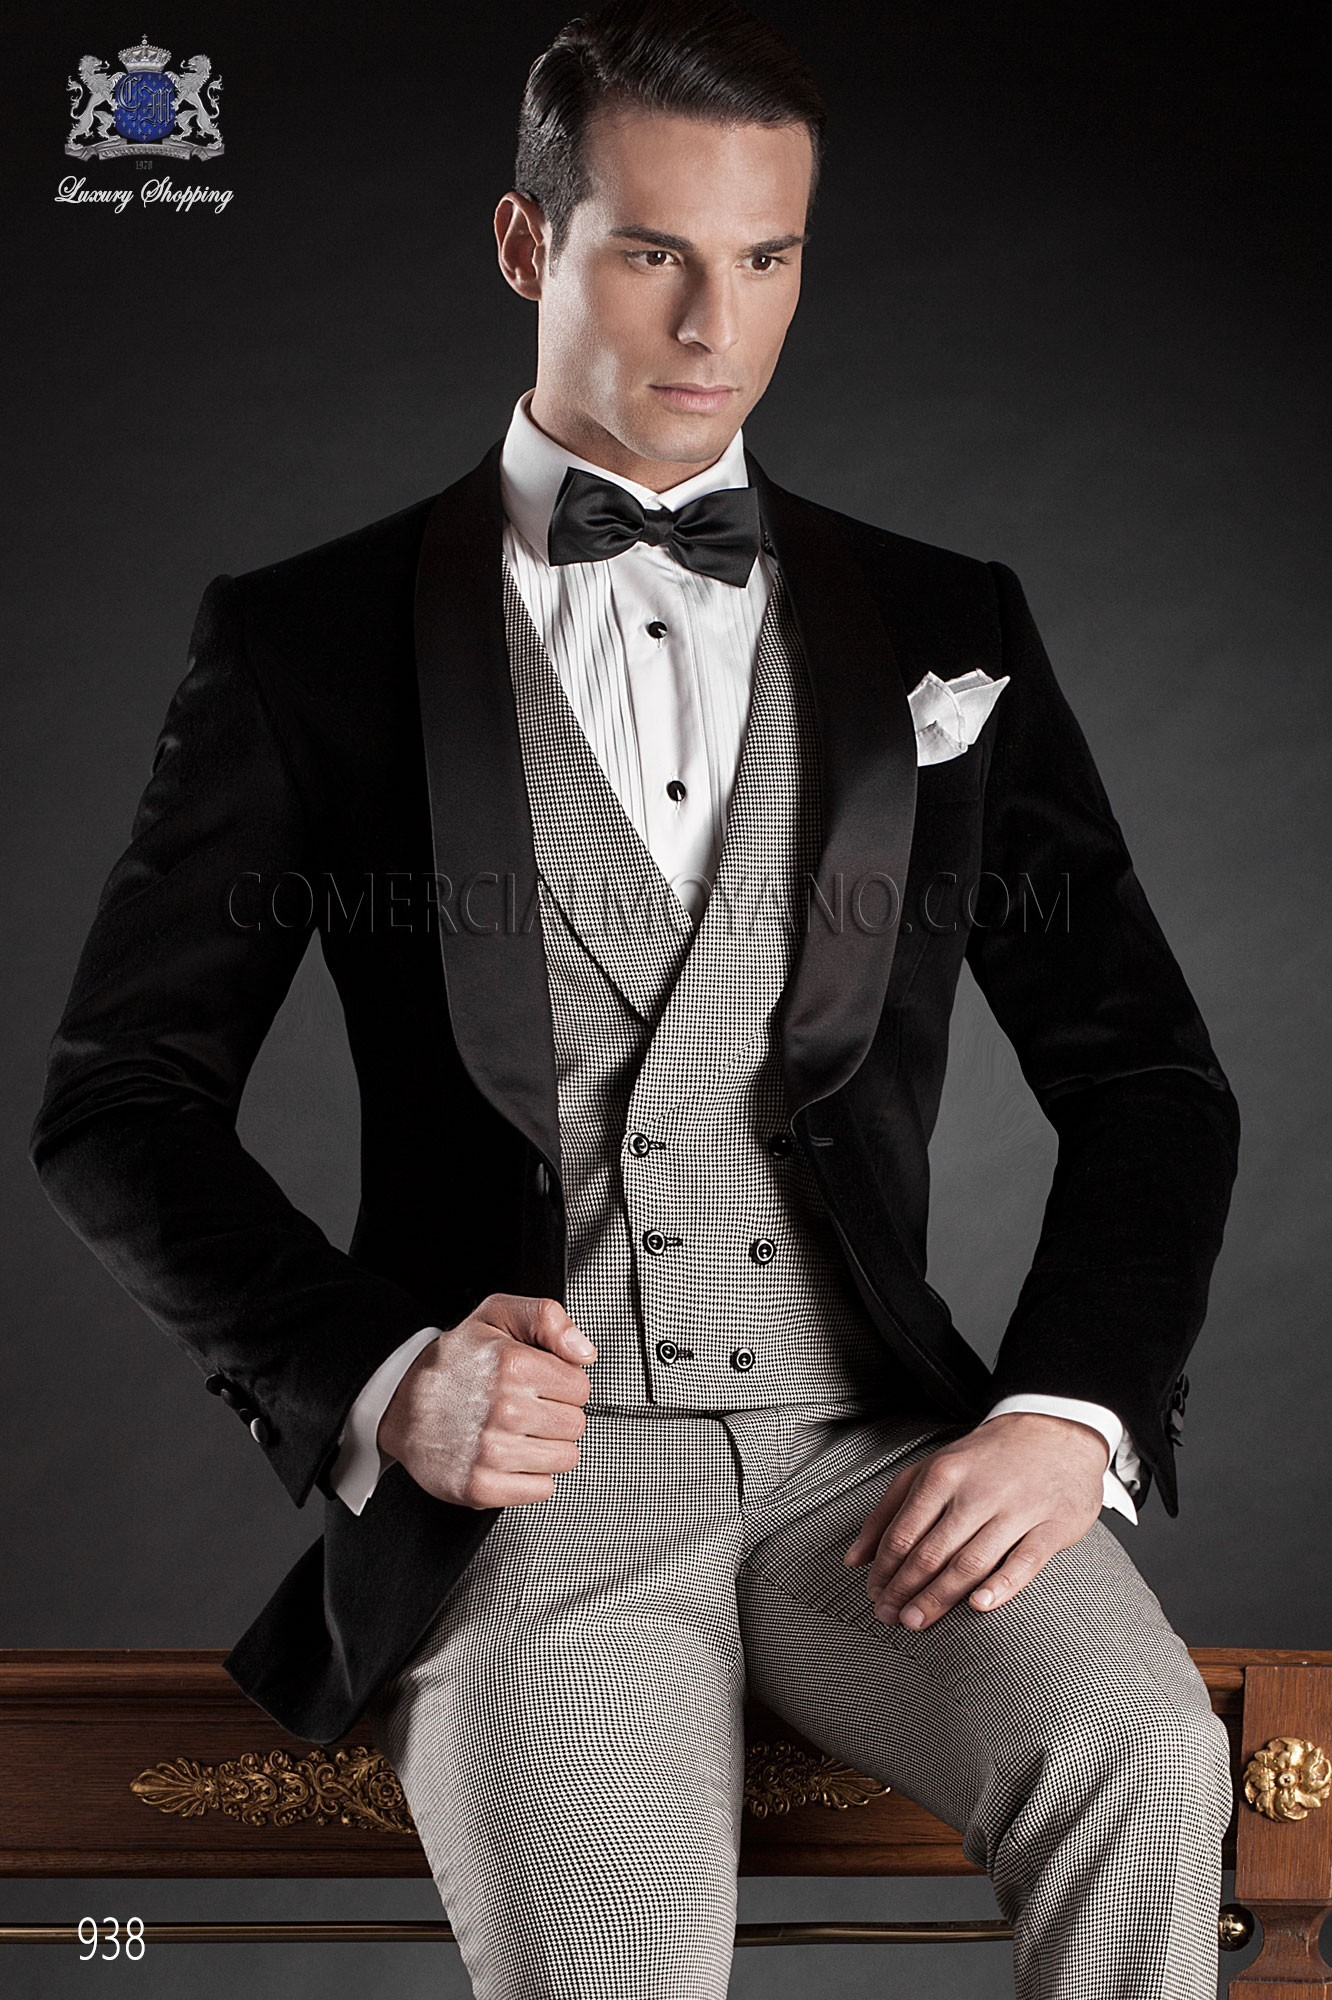 Black Tie black men wedding suit model 938 Ottavio Nuccio Gala